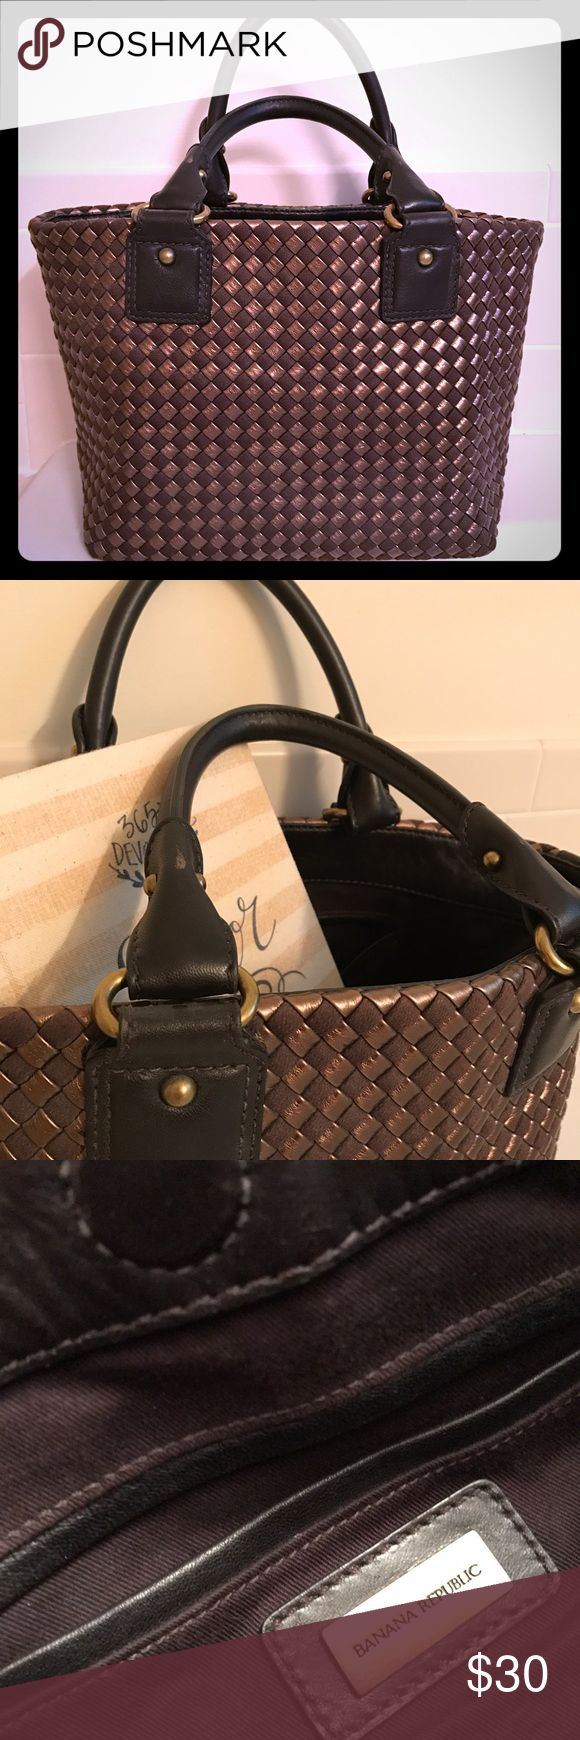 Banana Republic handbag Soft leather and woven handbag, dark brown. Perfect summer bag-- cotton lining, interior pocket, and magnet close... and big enough for a book or two! In great shape, even the leather base is in excellent condition. Banana Republic Bags